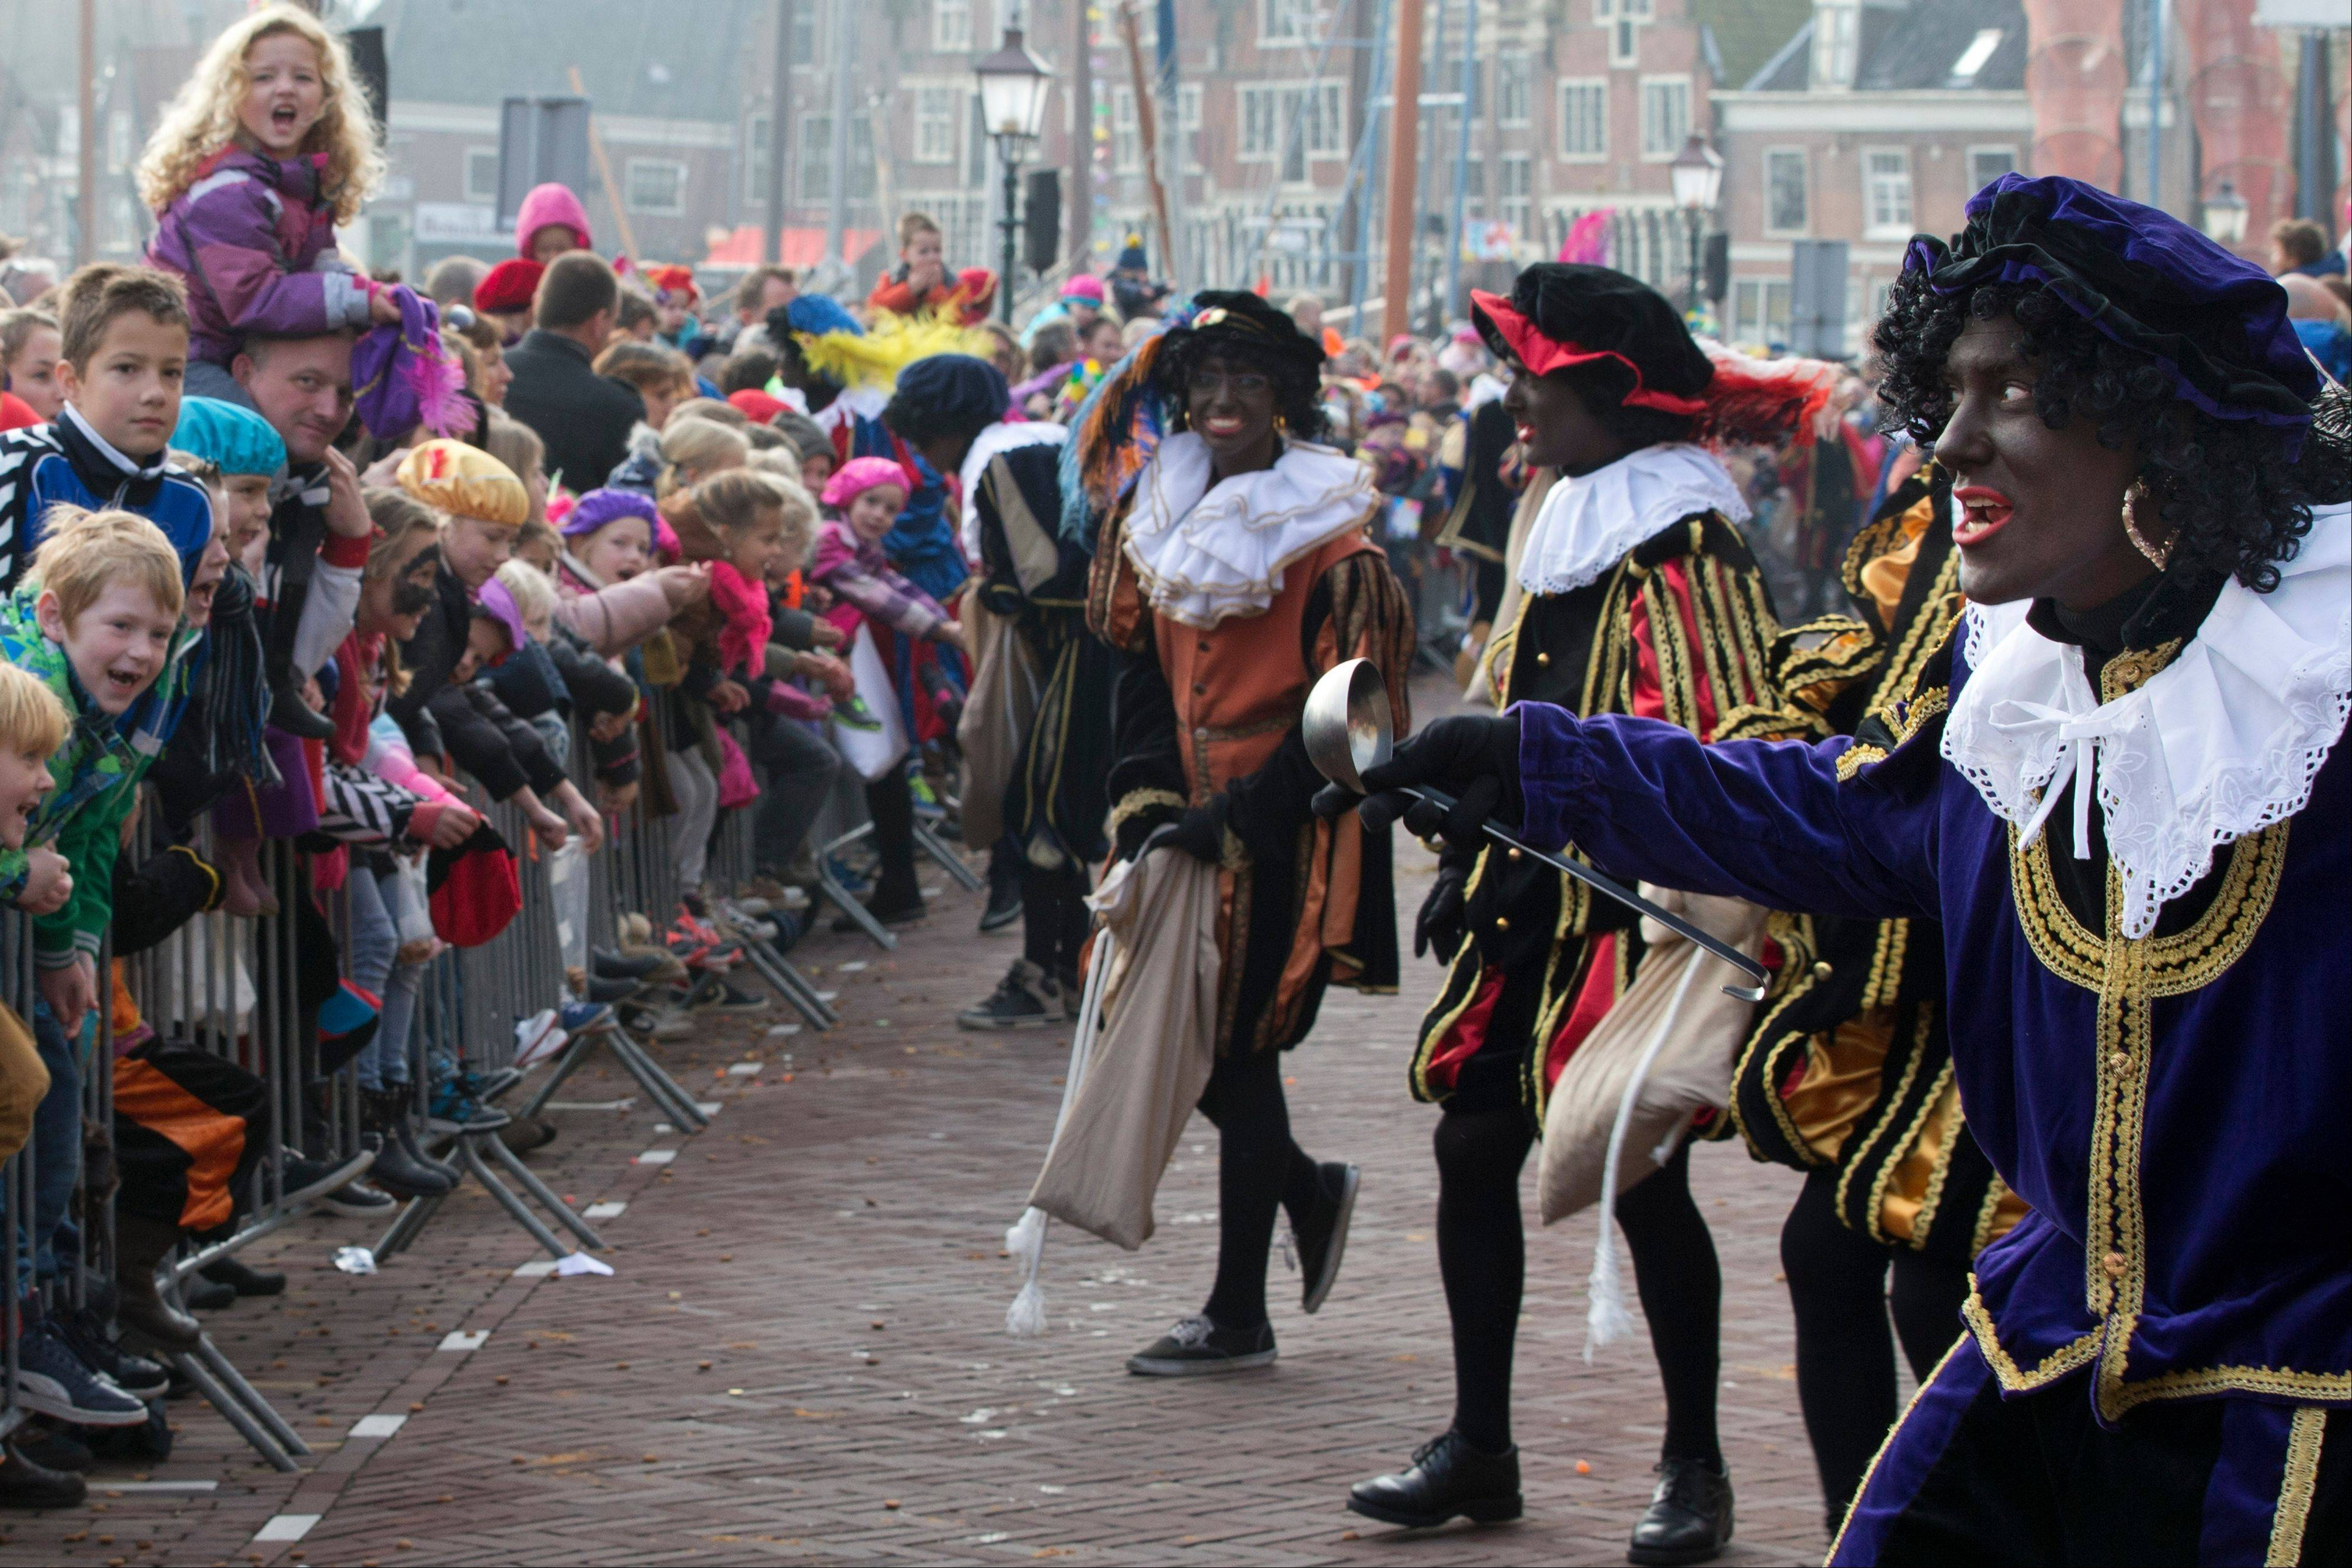 The Dutch version of Santa Claus, Sinterklaas, or Saint Nicholas, and his blackface sidekicks �Zwarte Piet� or �Black Pete� arrive by steamboat Saturday in Hoorn, north-western Netherlands.